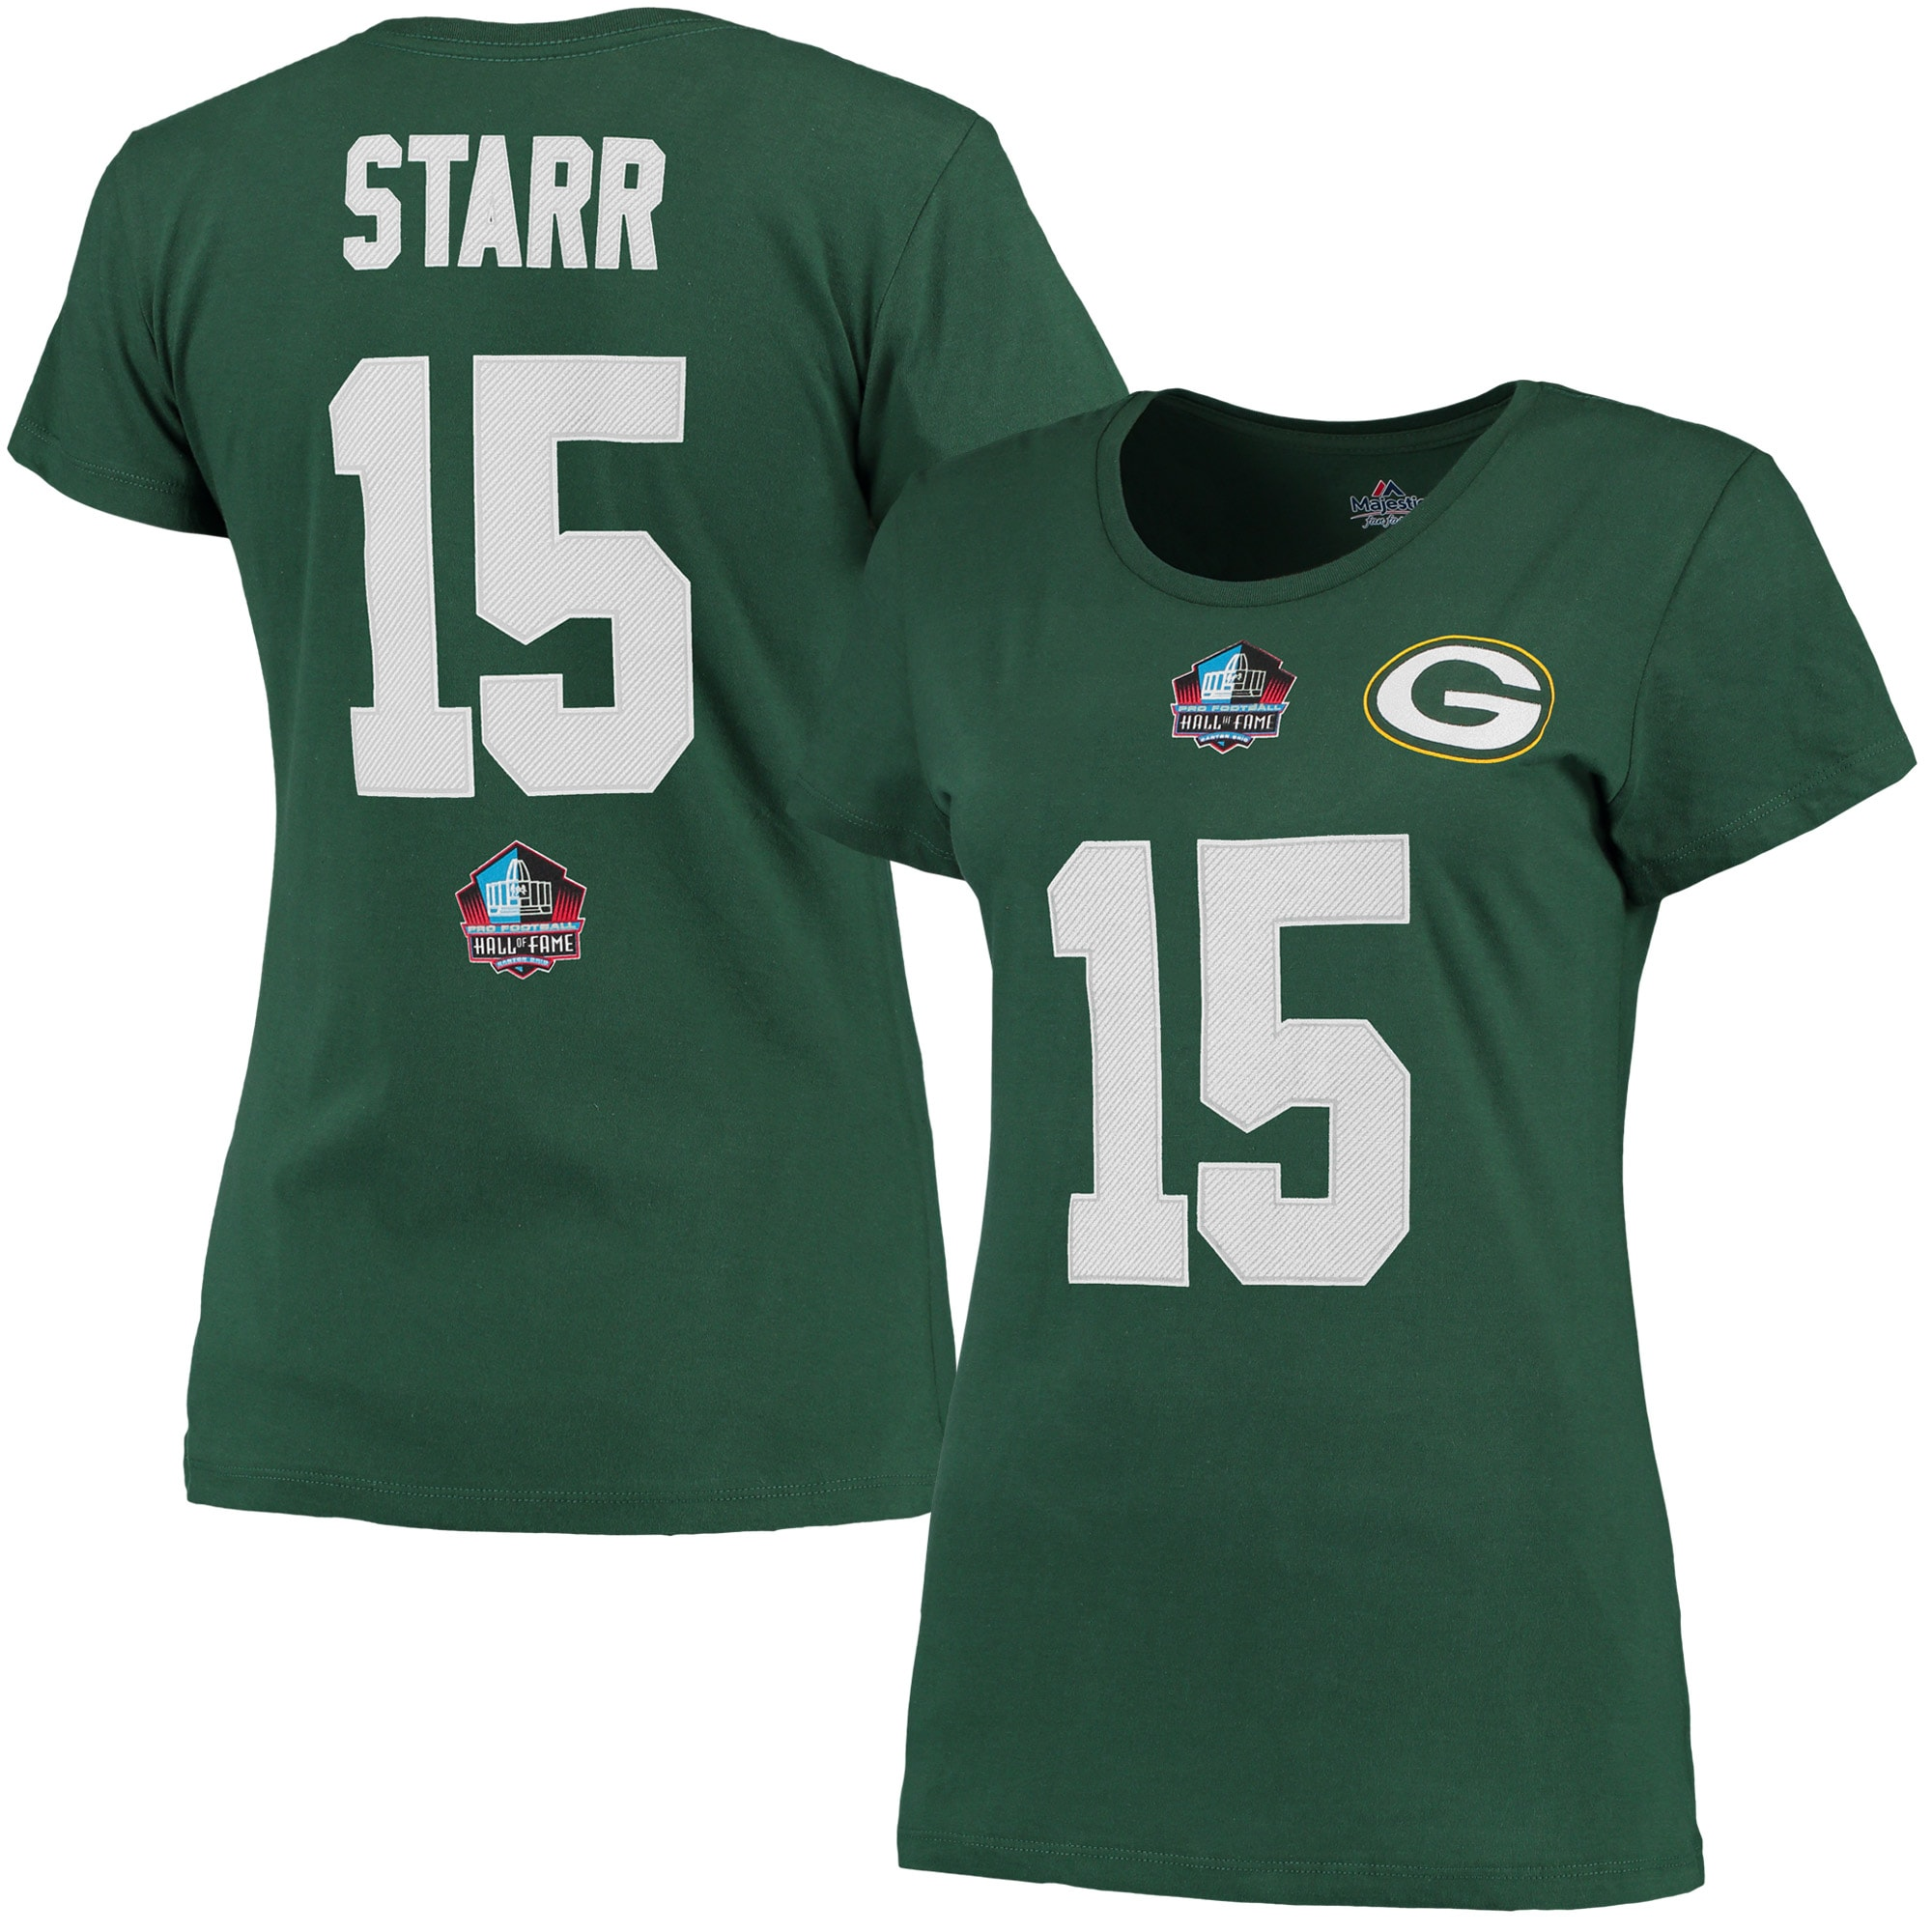 Bart Starr Green Bay Packers Majestic Women's Hall of Fame Fair Catch V T-Shirt - Green